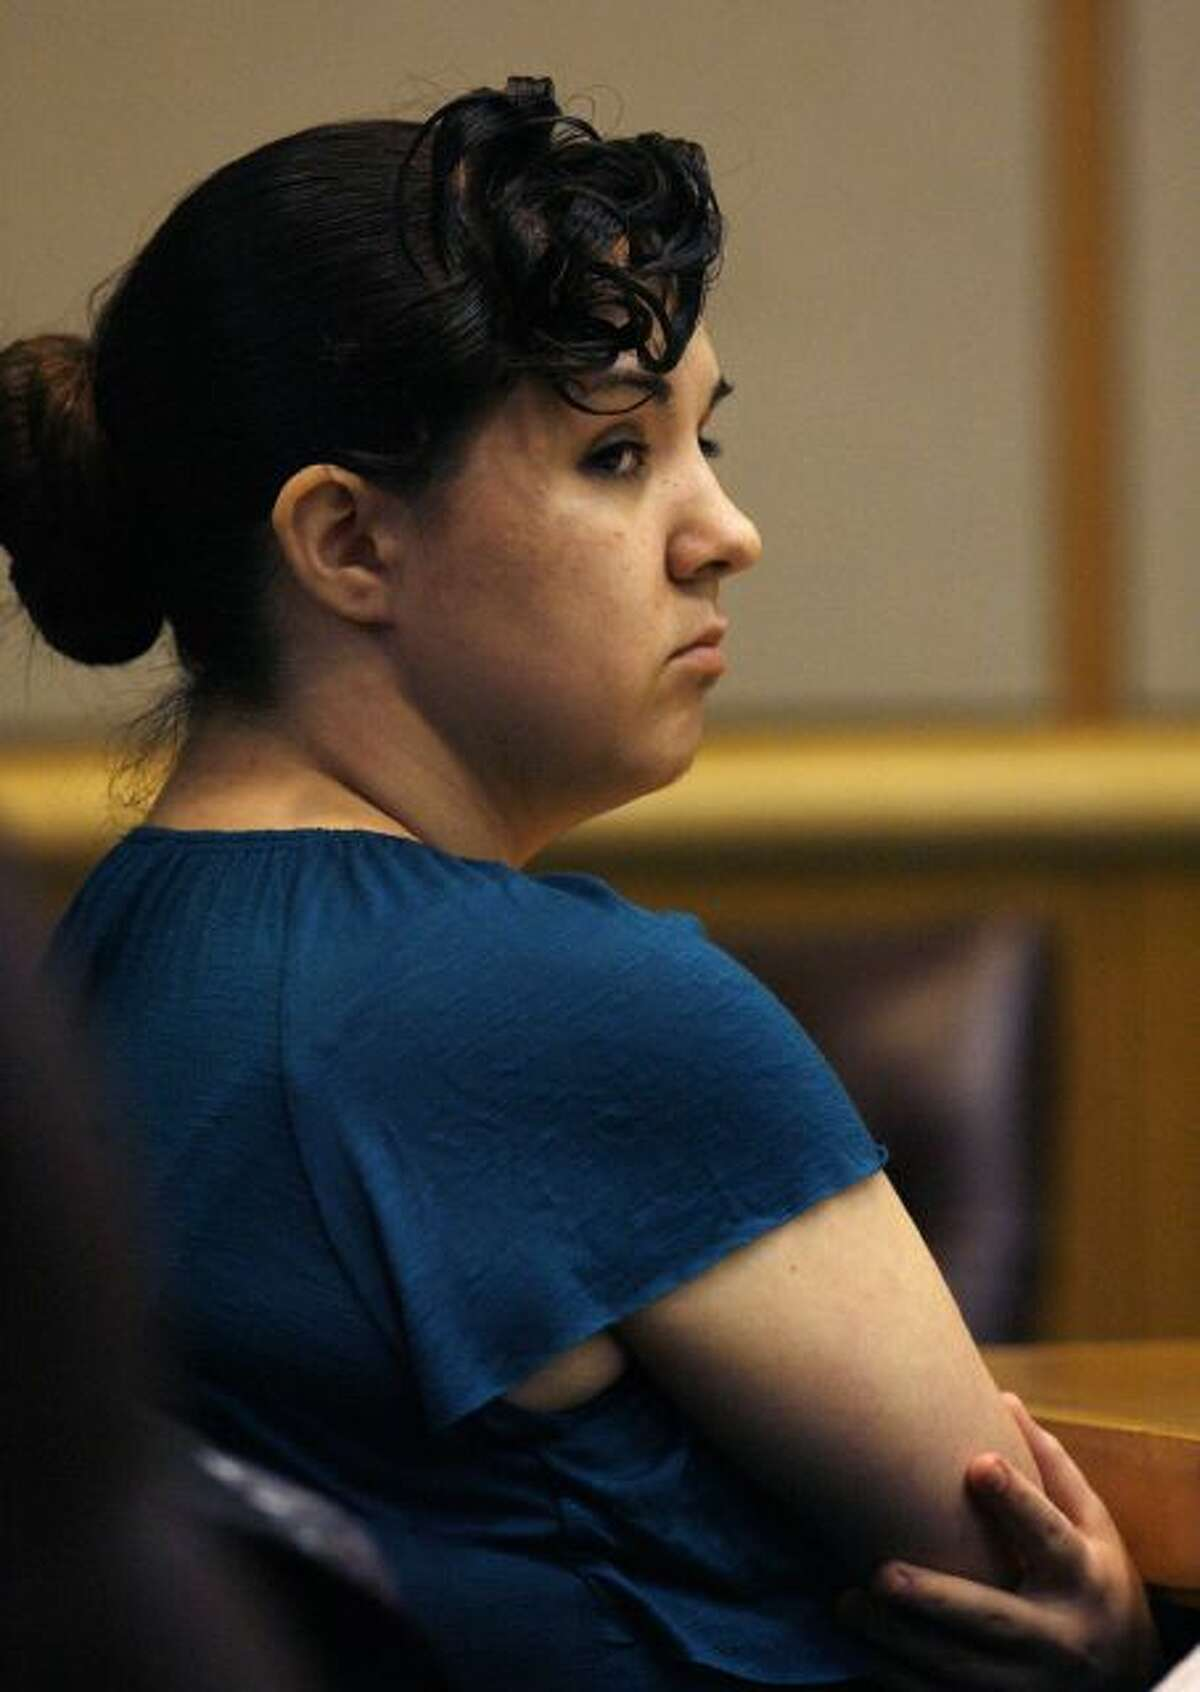 Defendant Jennifer Mee watches members of the jury during her trial on Friday, Sept. 20, 2013, 2013. Mee and two men are charged in the death of Shannon Griffin, a 22-year-old Wal-Mart worker. Prosecutors say Mee lured Griffin to a St. Petersburg home under the pretense of buying marijuana, but instead, two of Mee's friends robbed him at gunpoint. Griffin struggled with the suspects and was shot several times. Mee gained fame because of her uncontrolled hiccupping as a teenager . Videos of her hiccupping gained her national attention, as did her attempts to quell the problem. (AP Photo/The Tampa Bay Times, Scott Keeler, Pool)